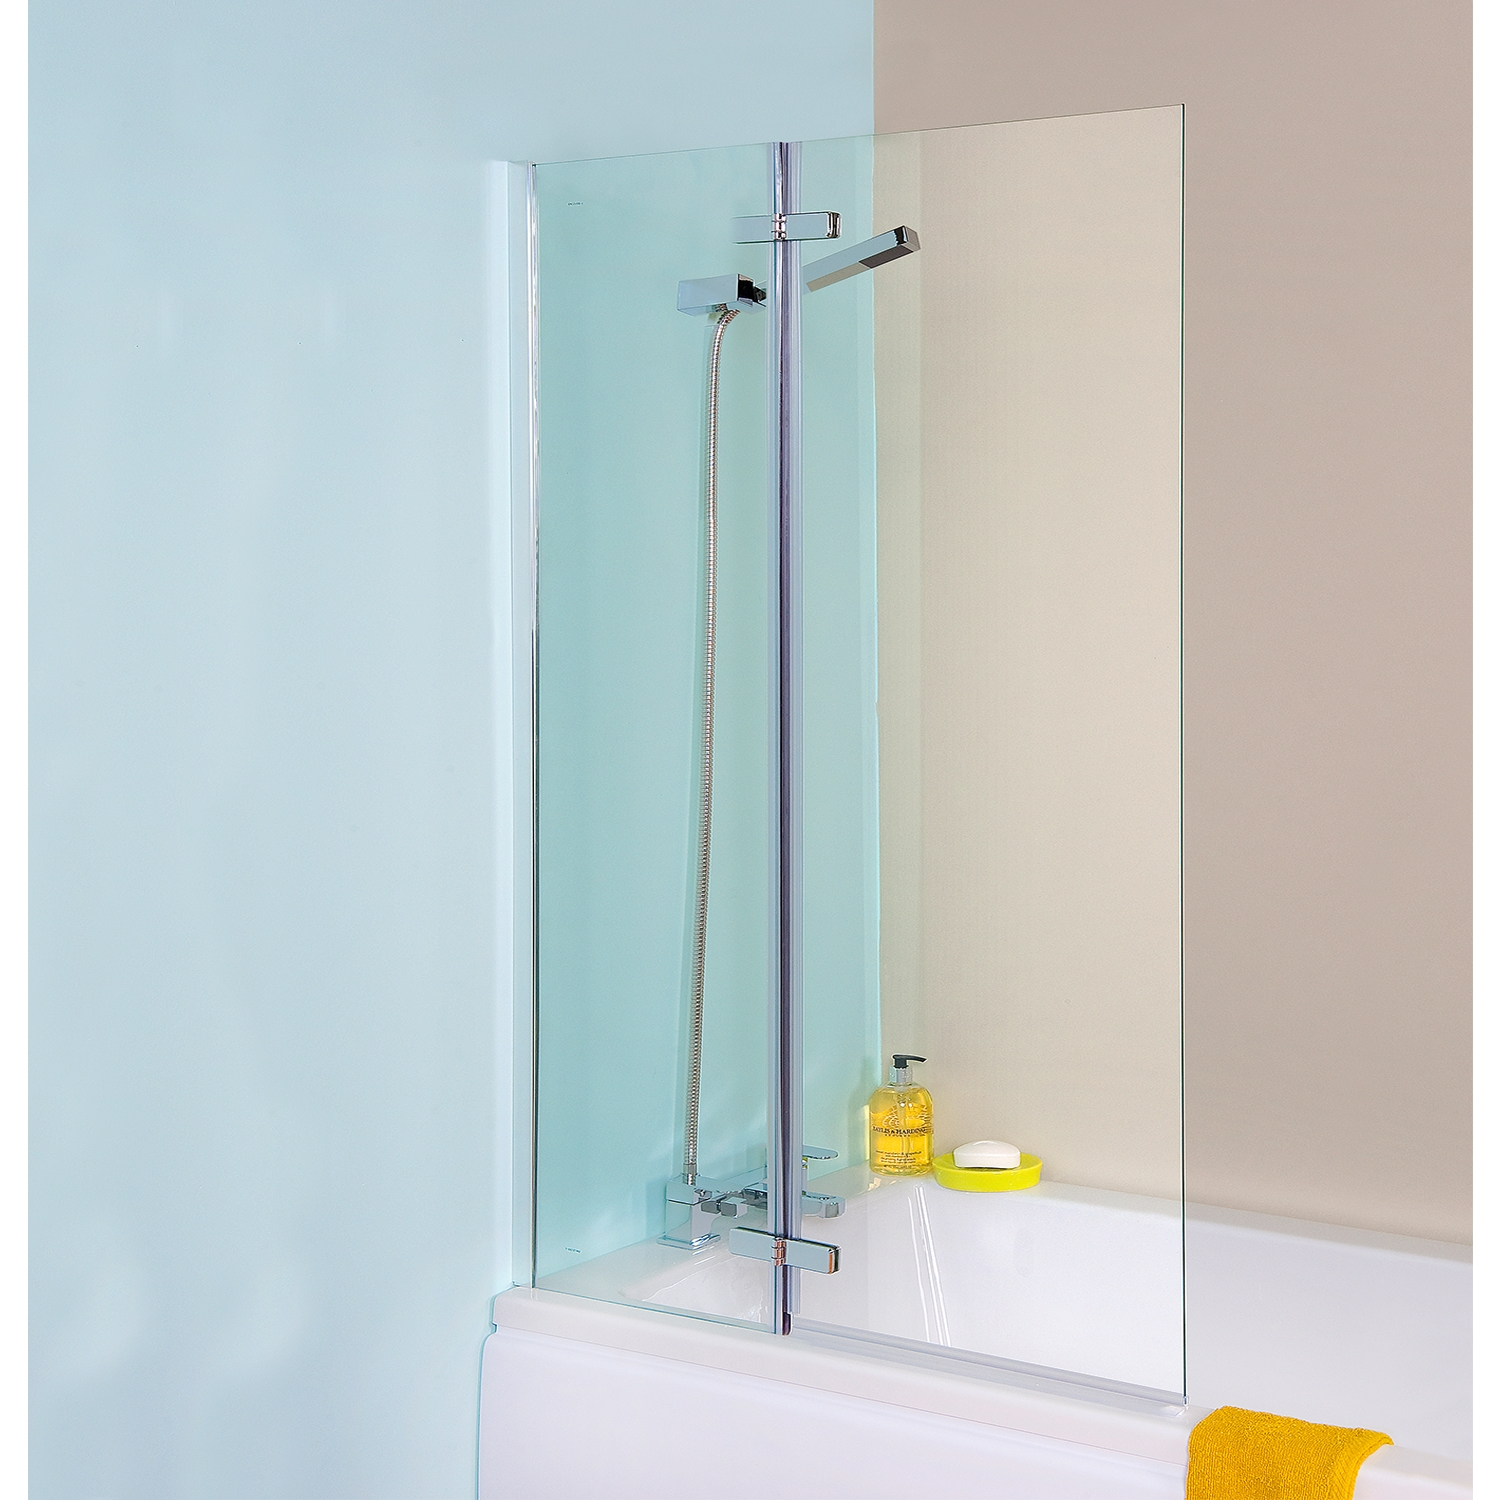 Premier Ella Straight Hinged Bath Screen, 1400mm High x 745mm Wide, 5mm Glass